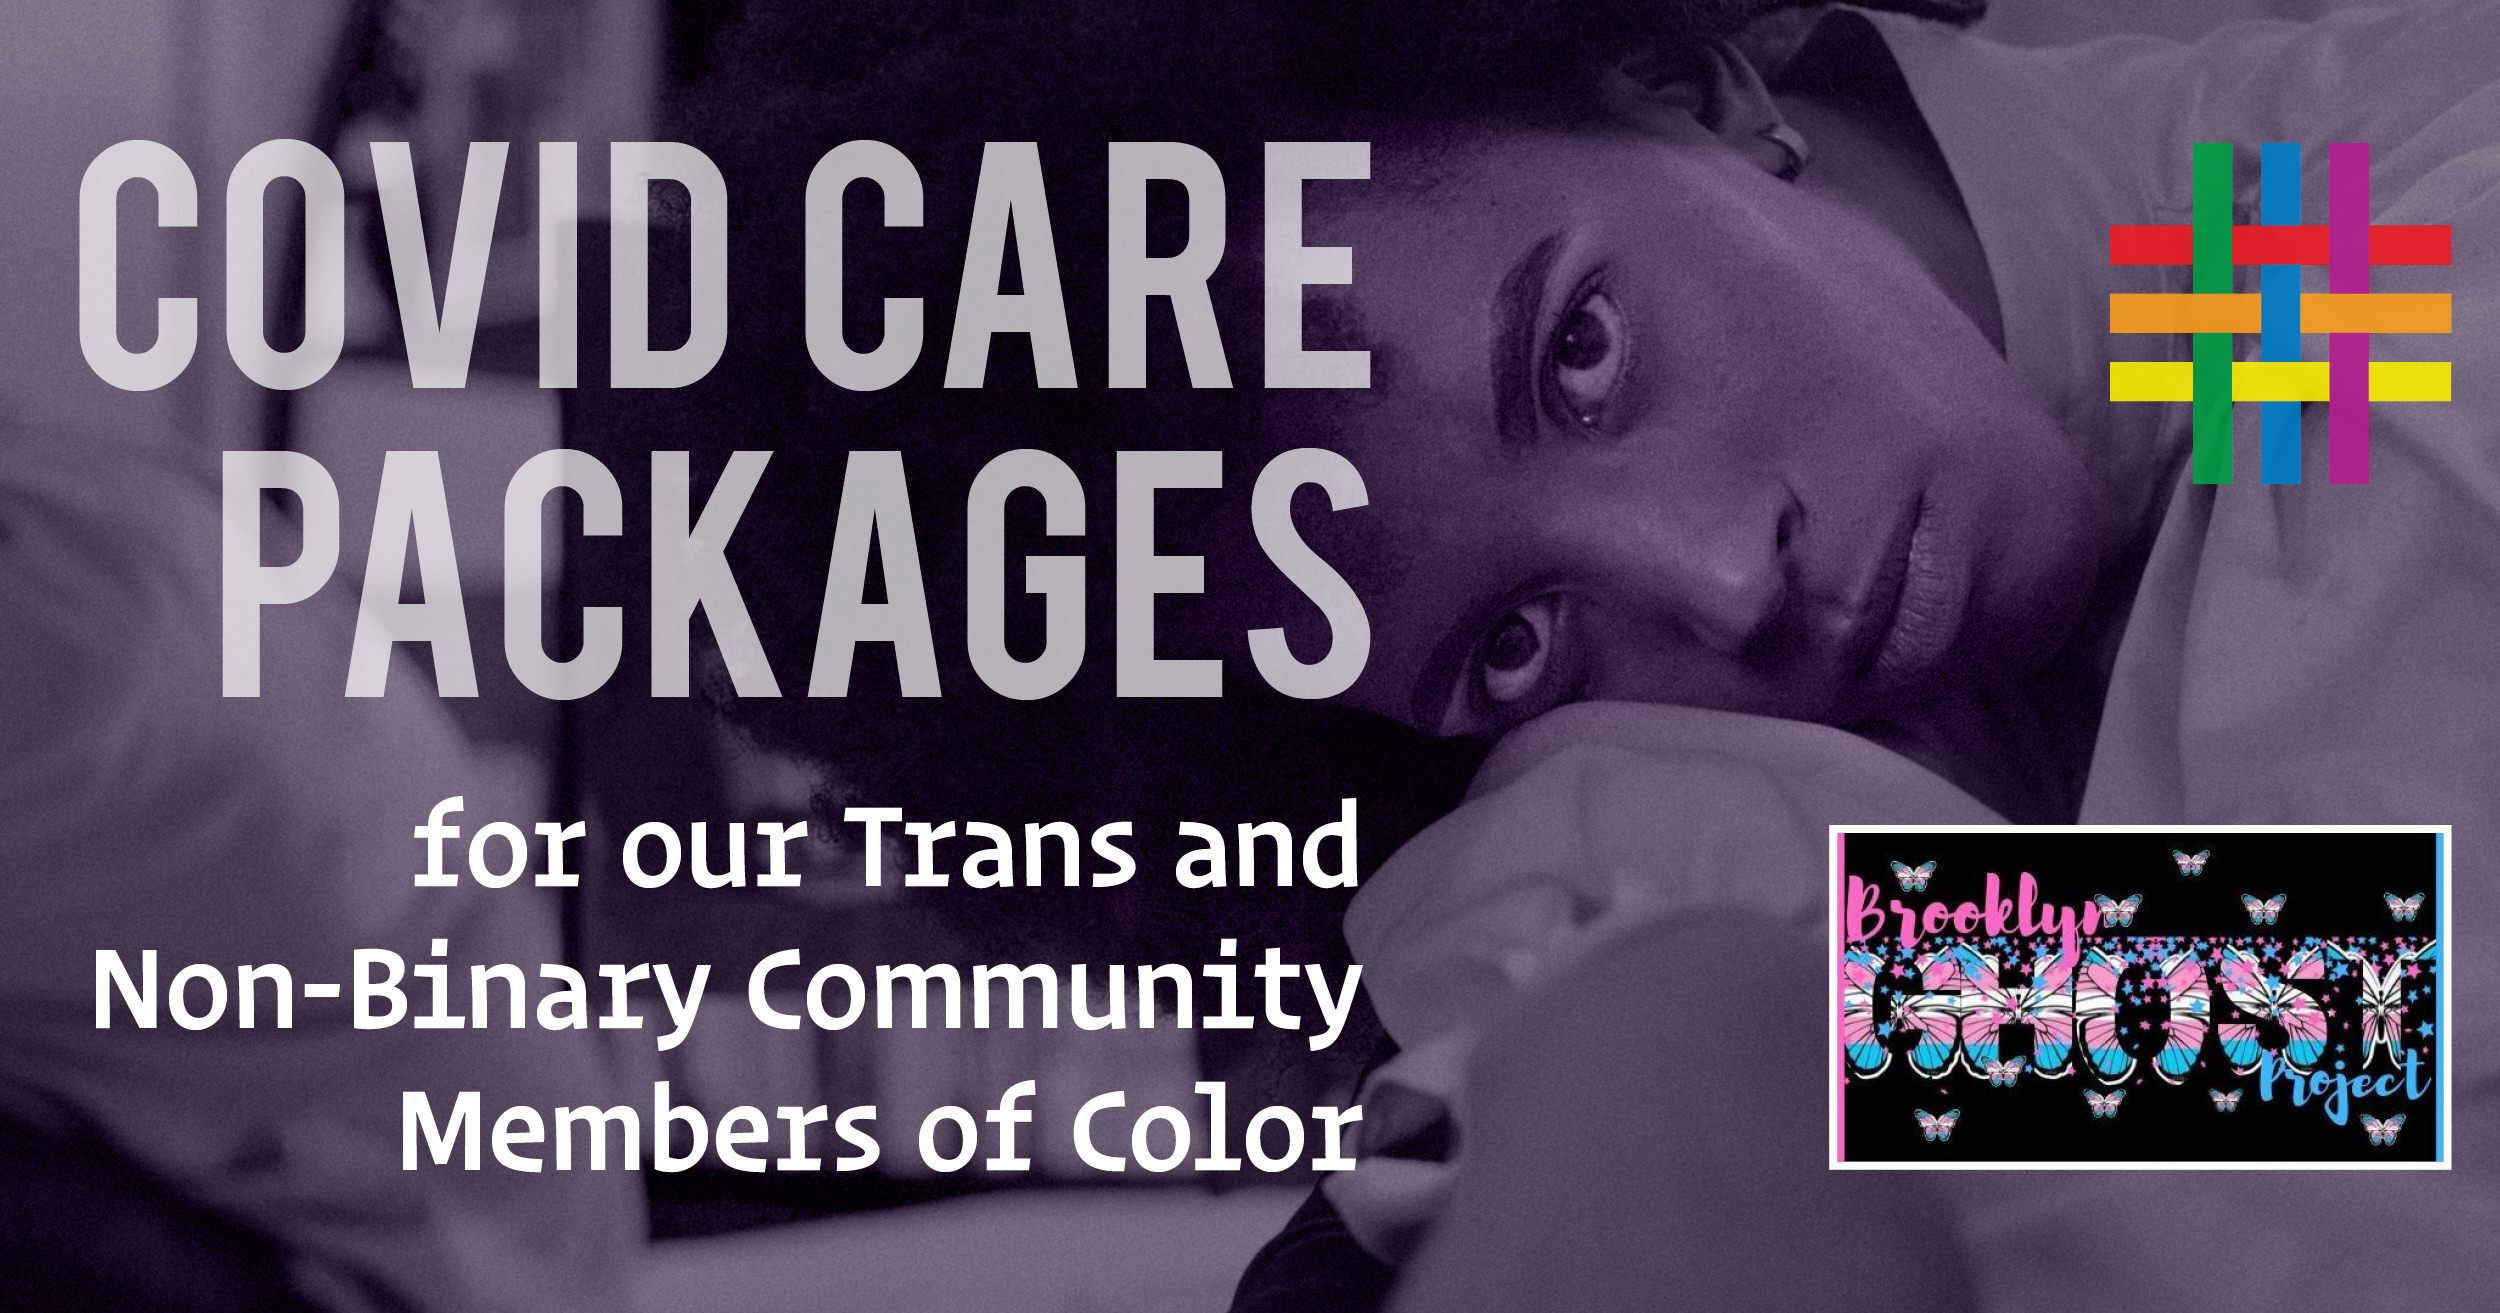 Covid-19 Care Packages for Trans And Non-Binary Community Members of Color at Brooklyn Community Pride Center